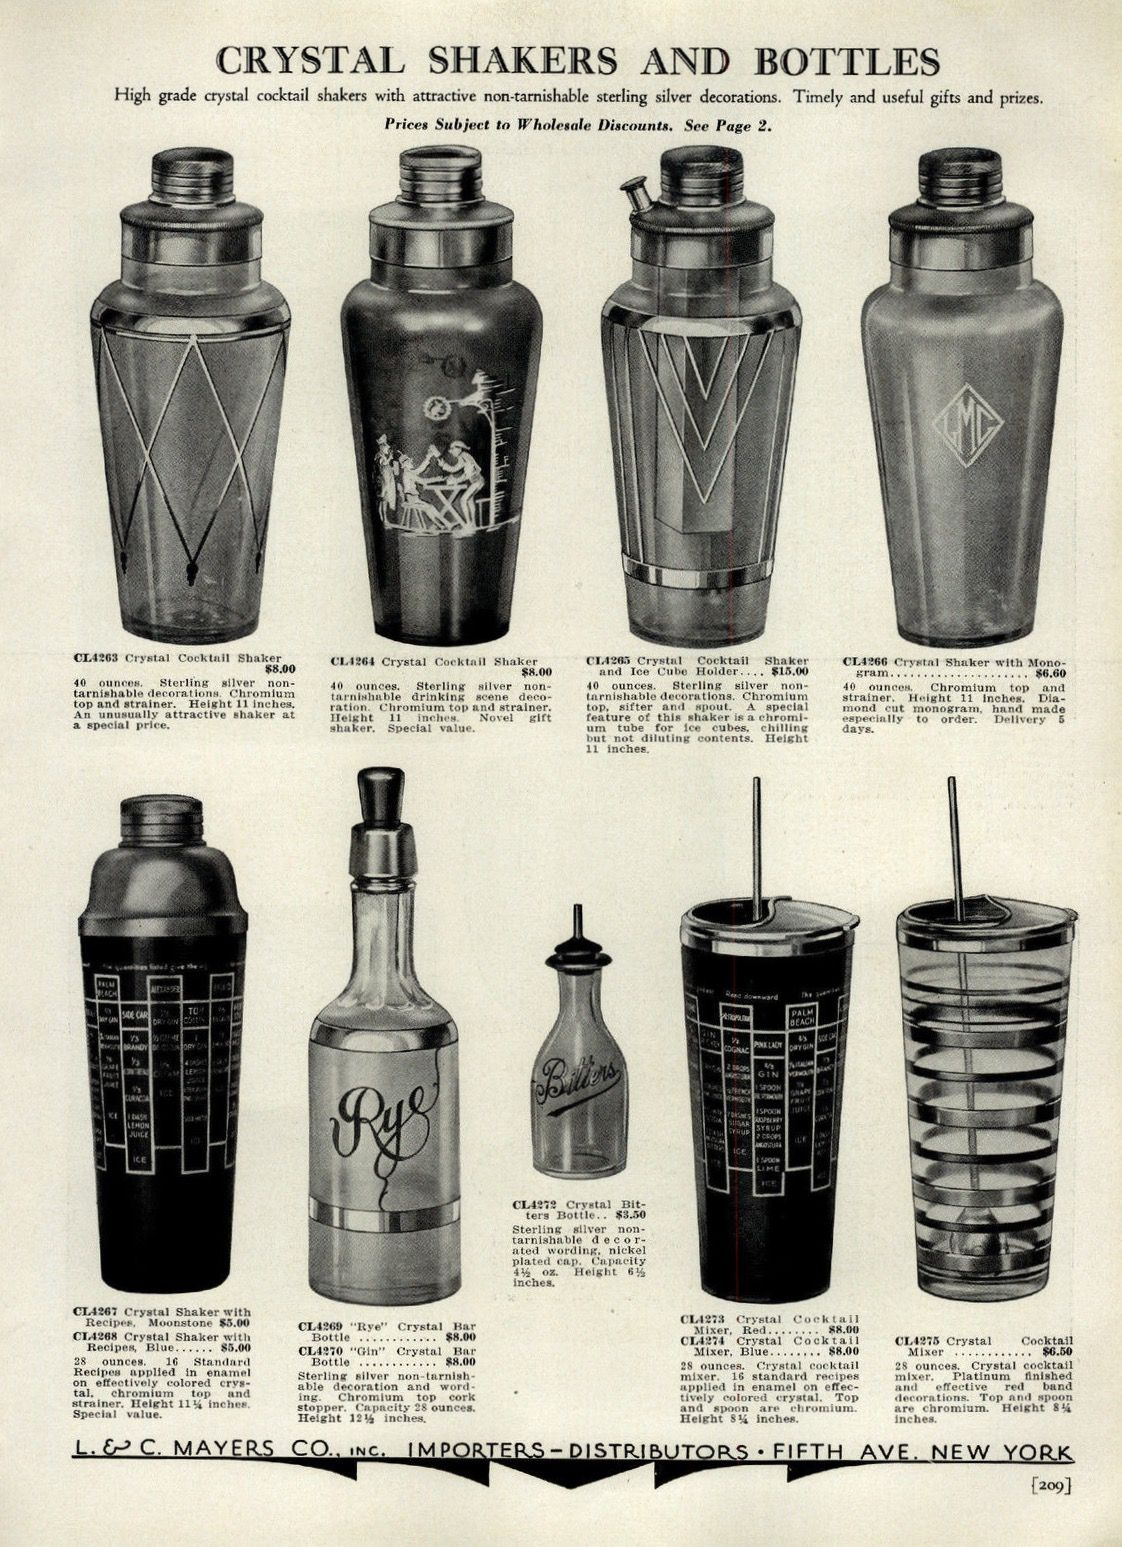 Vintage Crystal Cocktail Shakers Decanters Mixing Pitchers Bitters Bottles Print Ad So Cool Cocktail Shakers Cocktail Shaker Set Cocktails